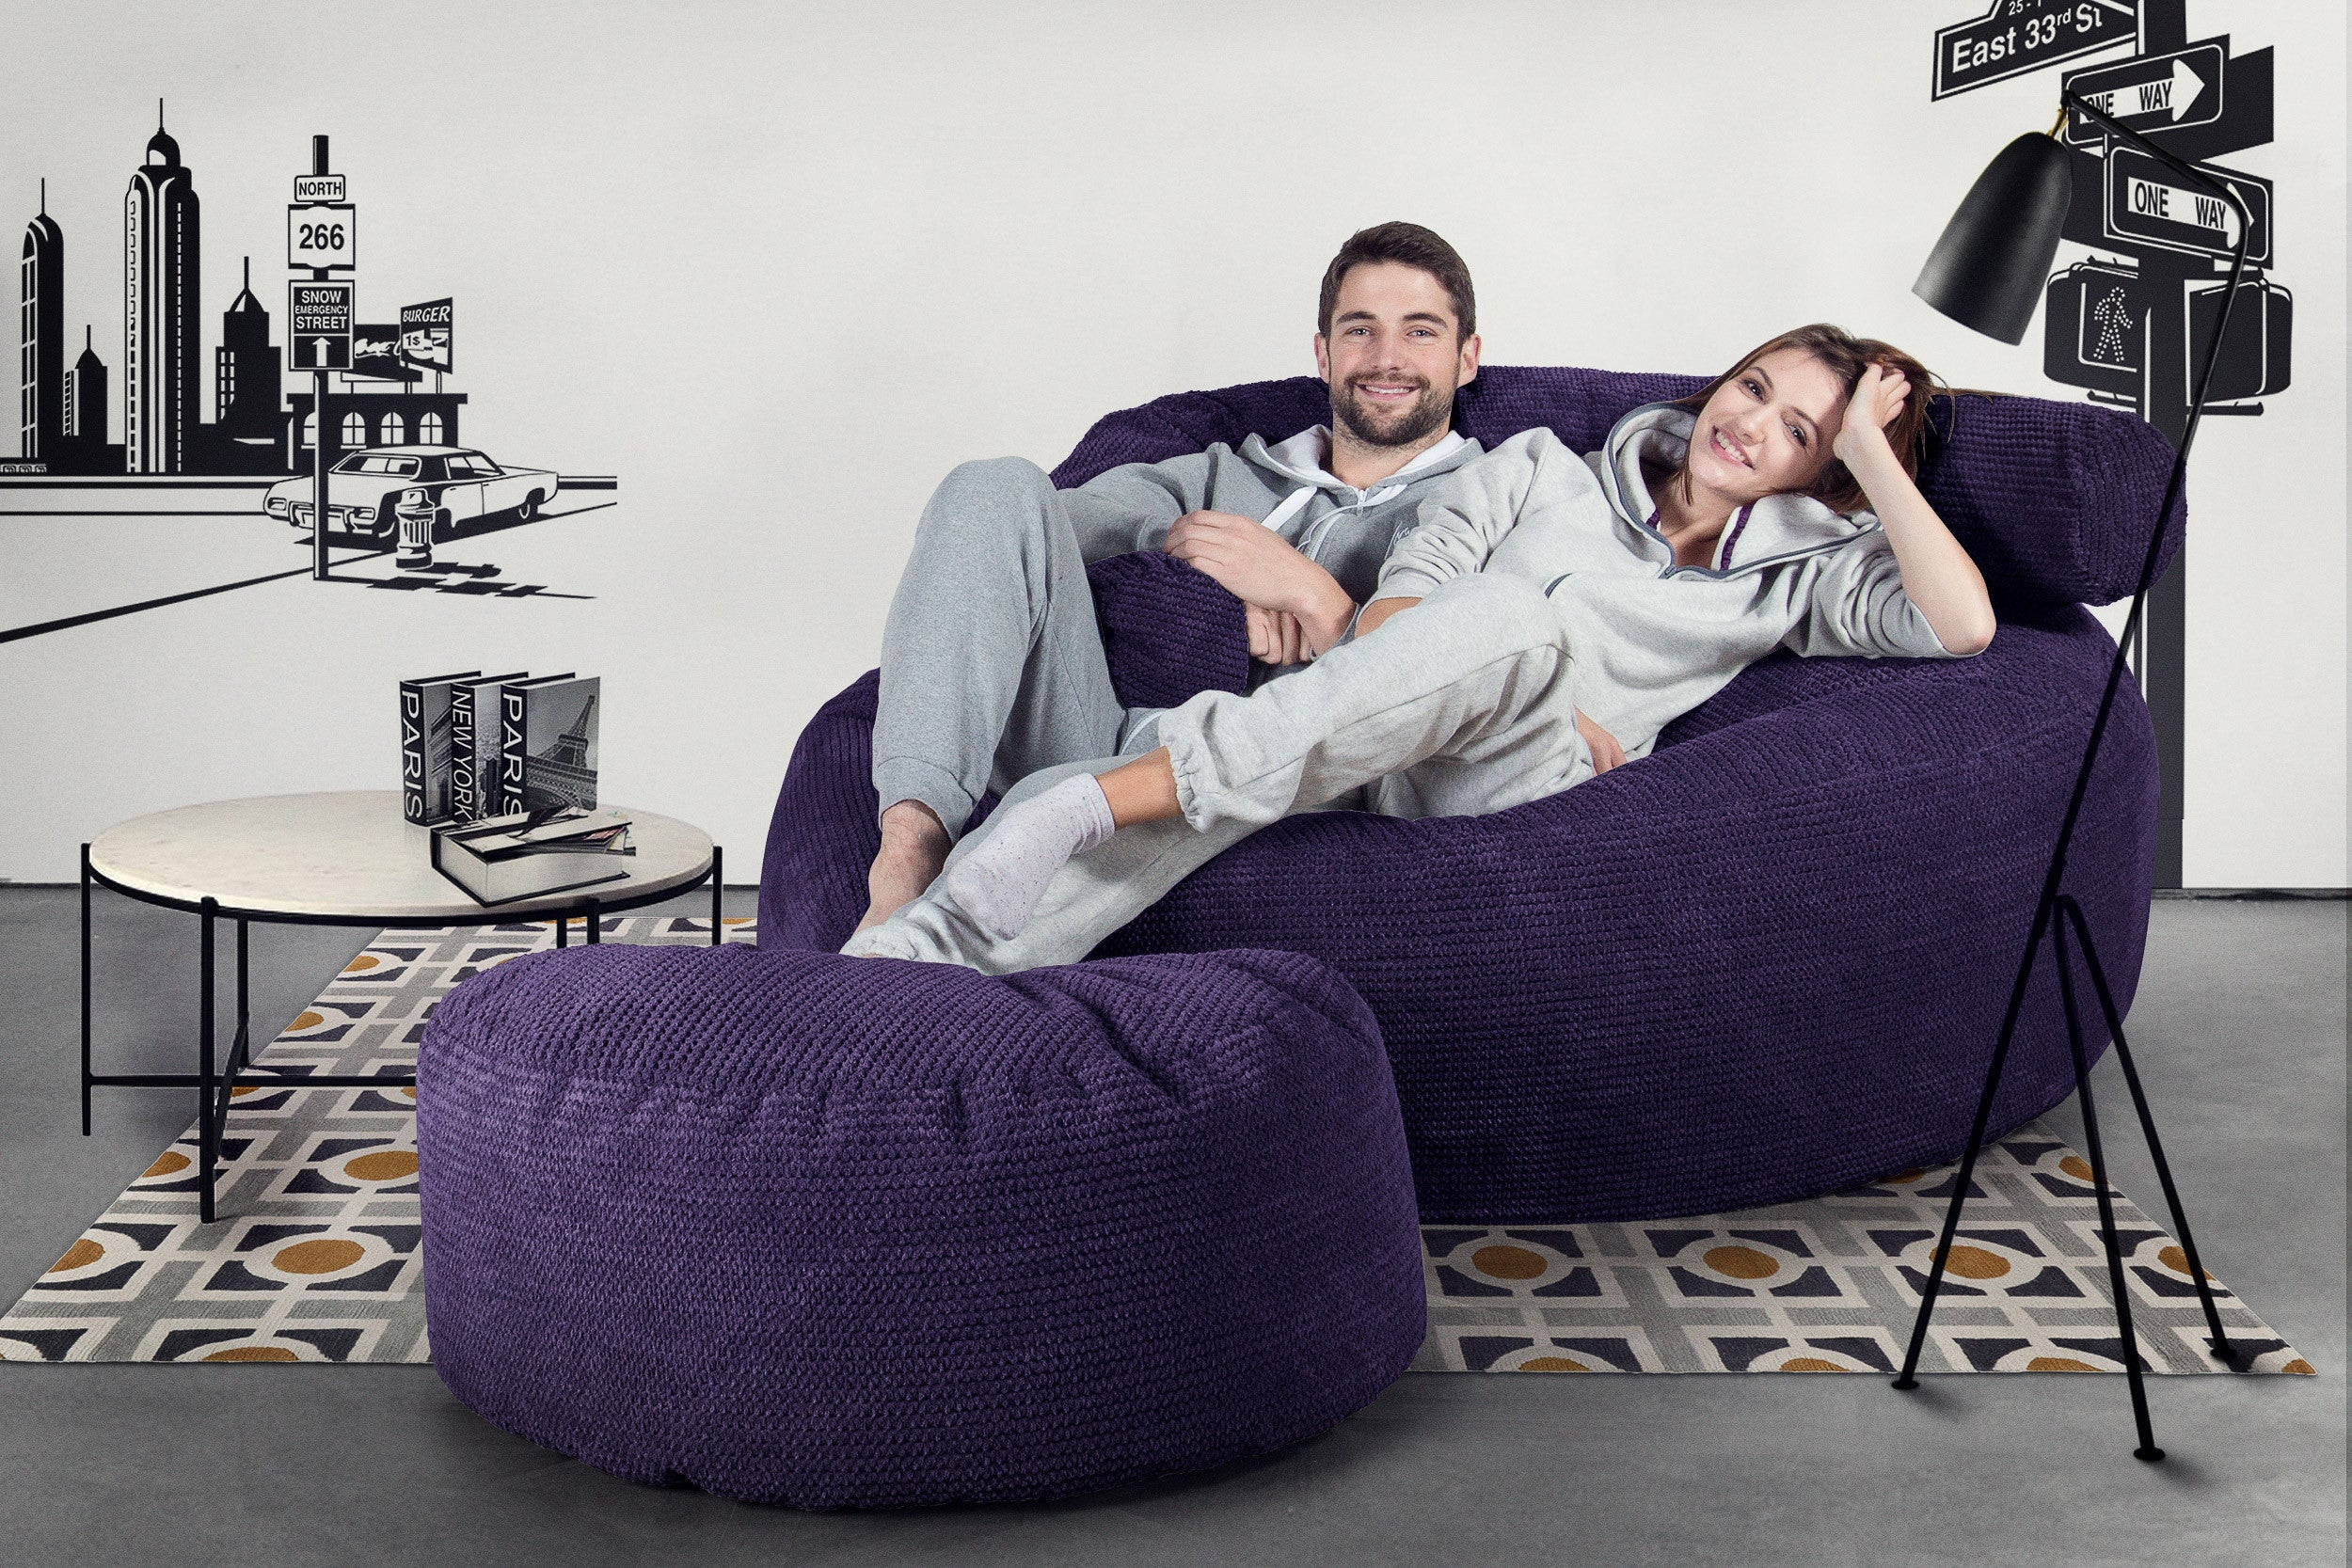 Mega Mammoth Bean Bag Sofa - Pom Pom Purple